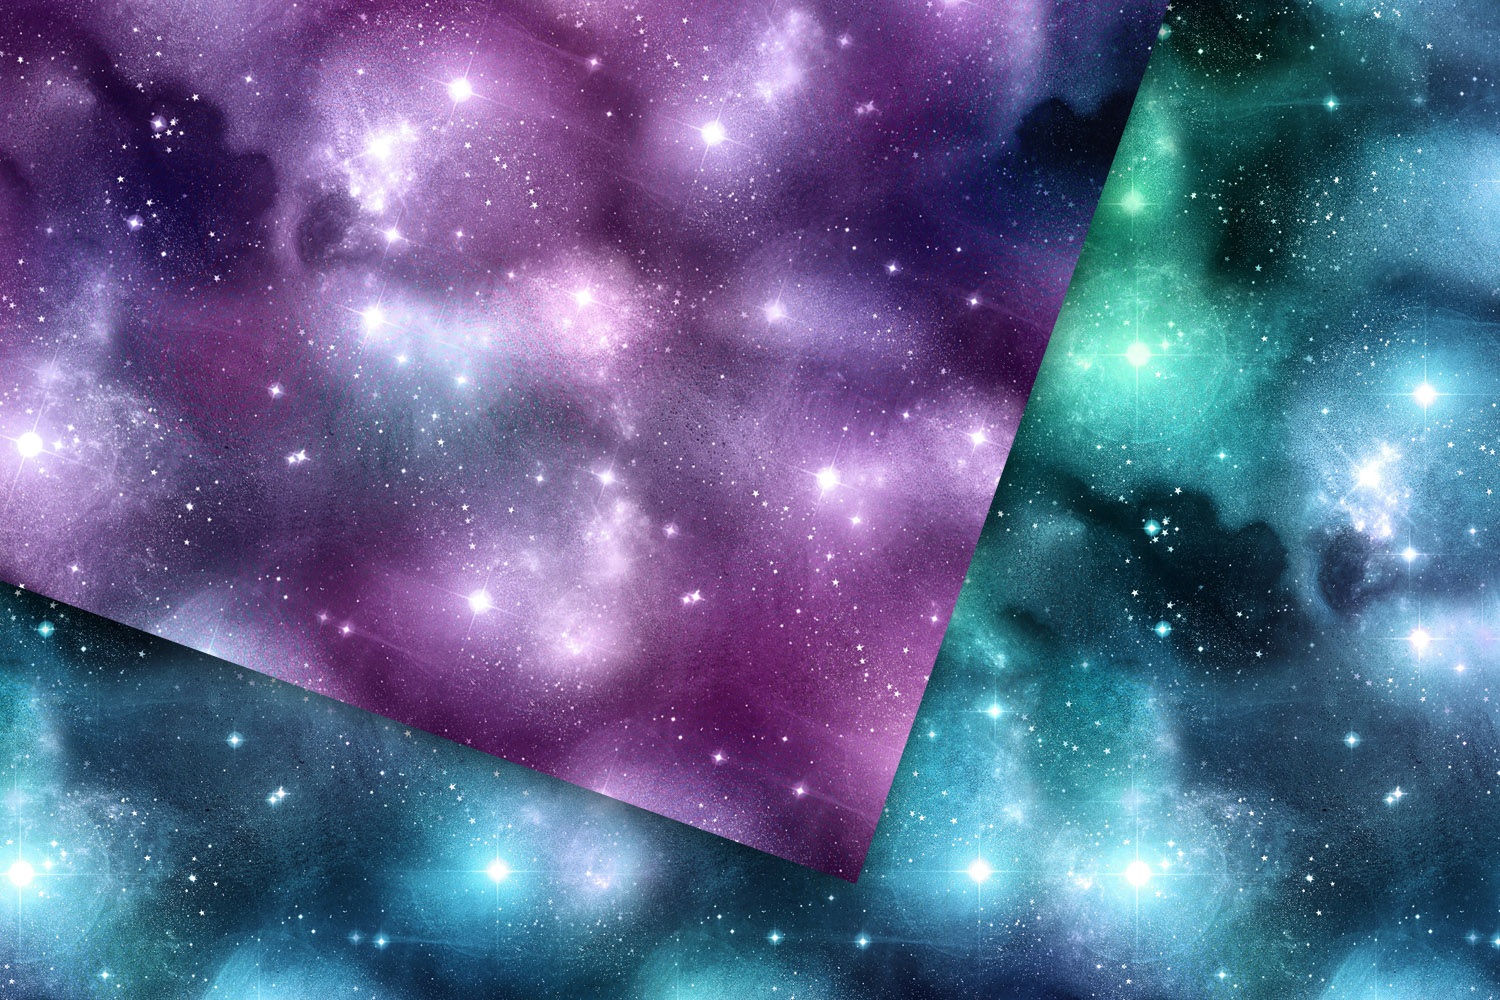 Seamless Watercolor Galaxy Textures example image 3